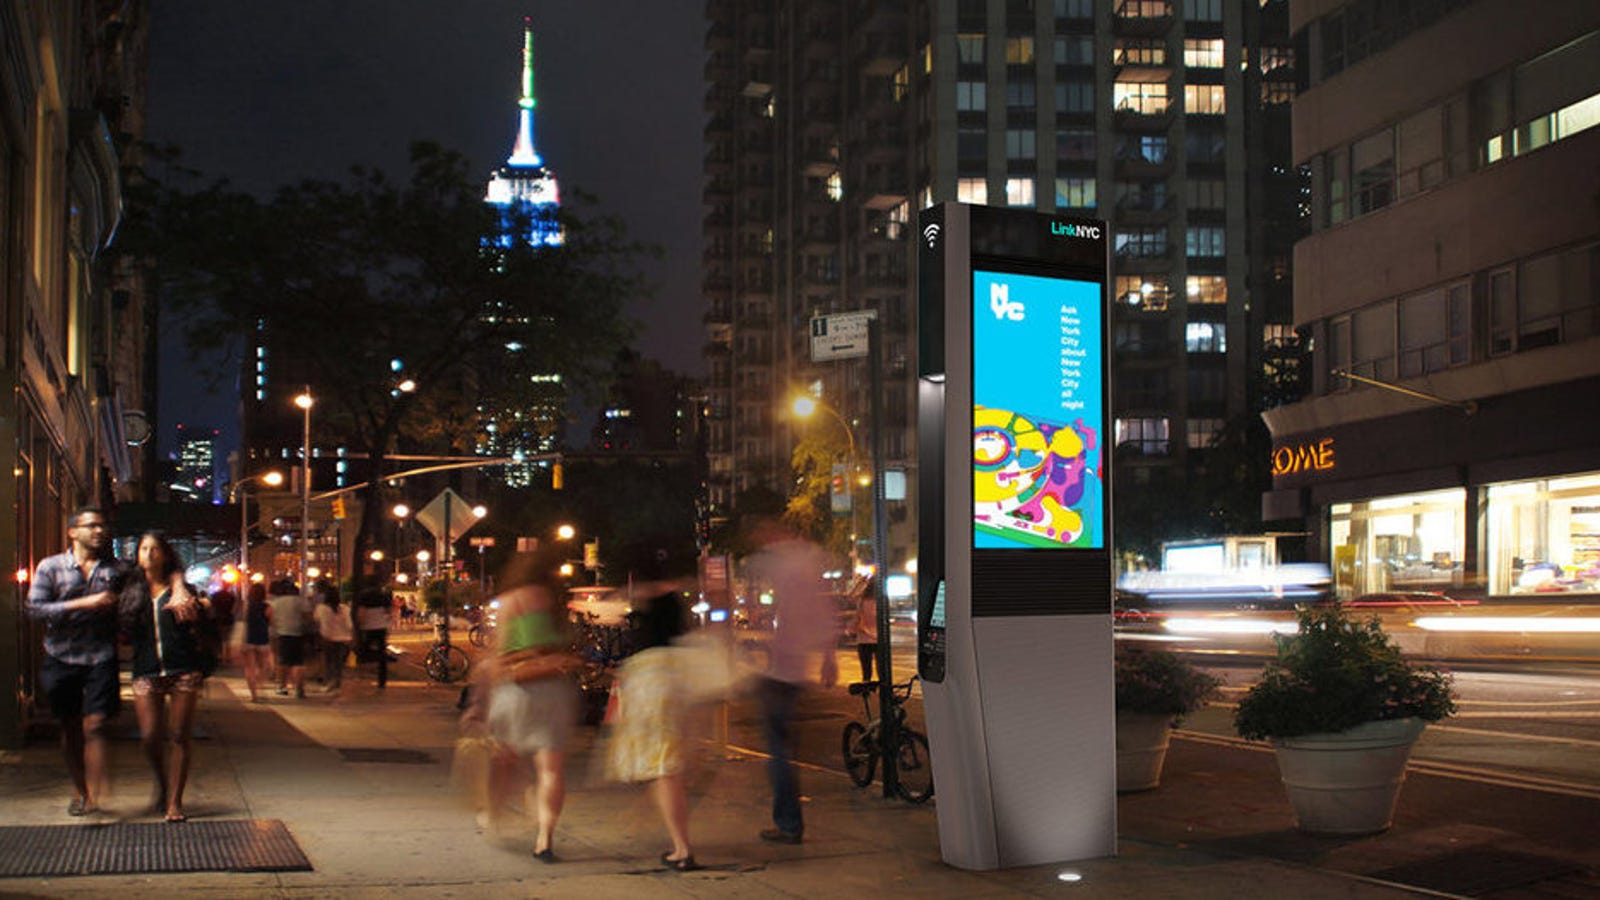 An Old-School Phone Phreak Has Been Making NYC Wifi Kiosks Play Creepy Music